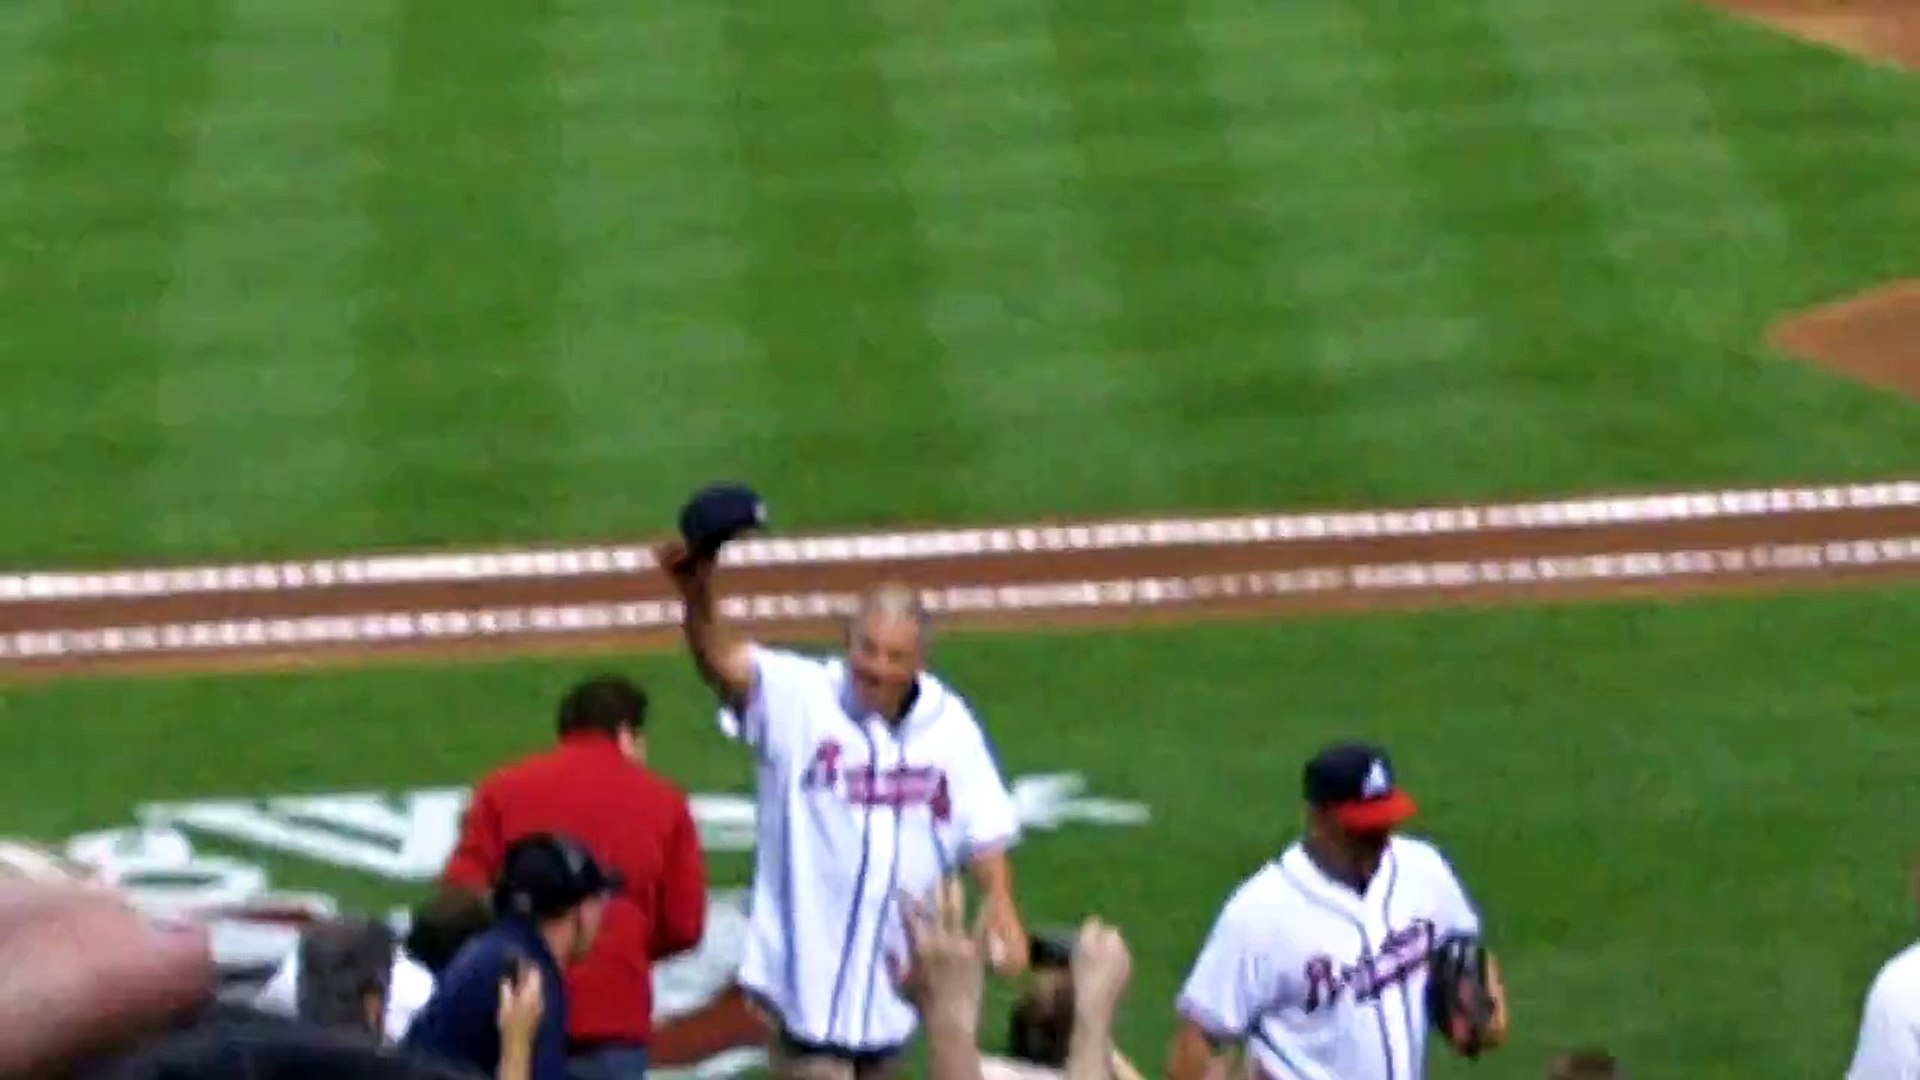 Bobby Cox tips his hat the the fans, Opening Day 2011